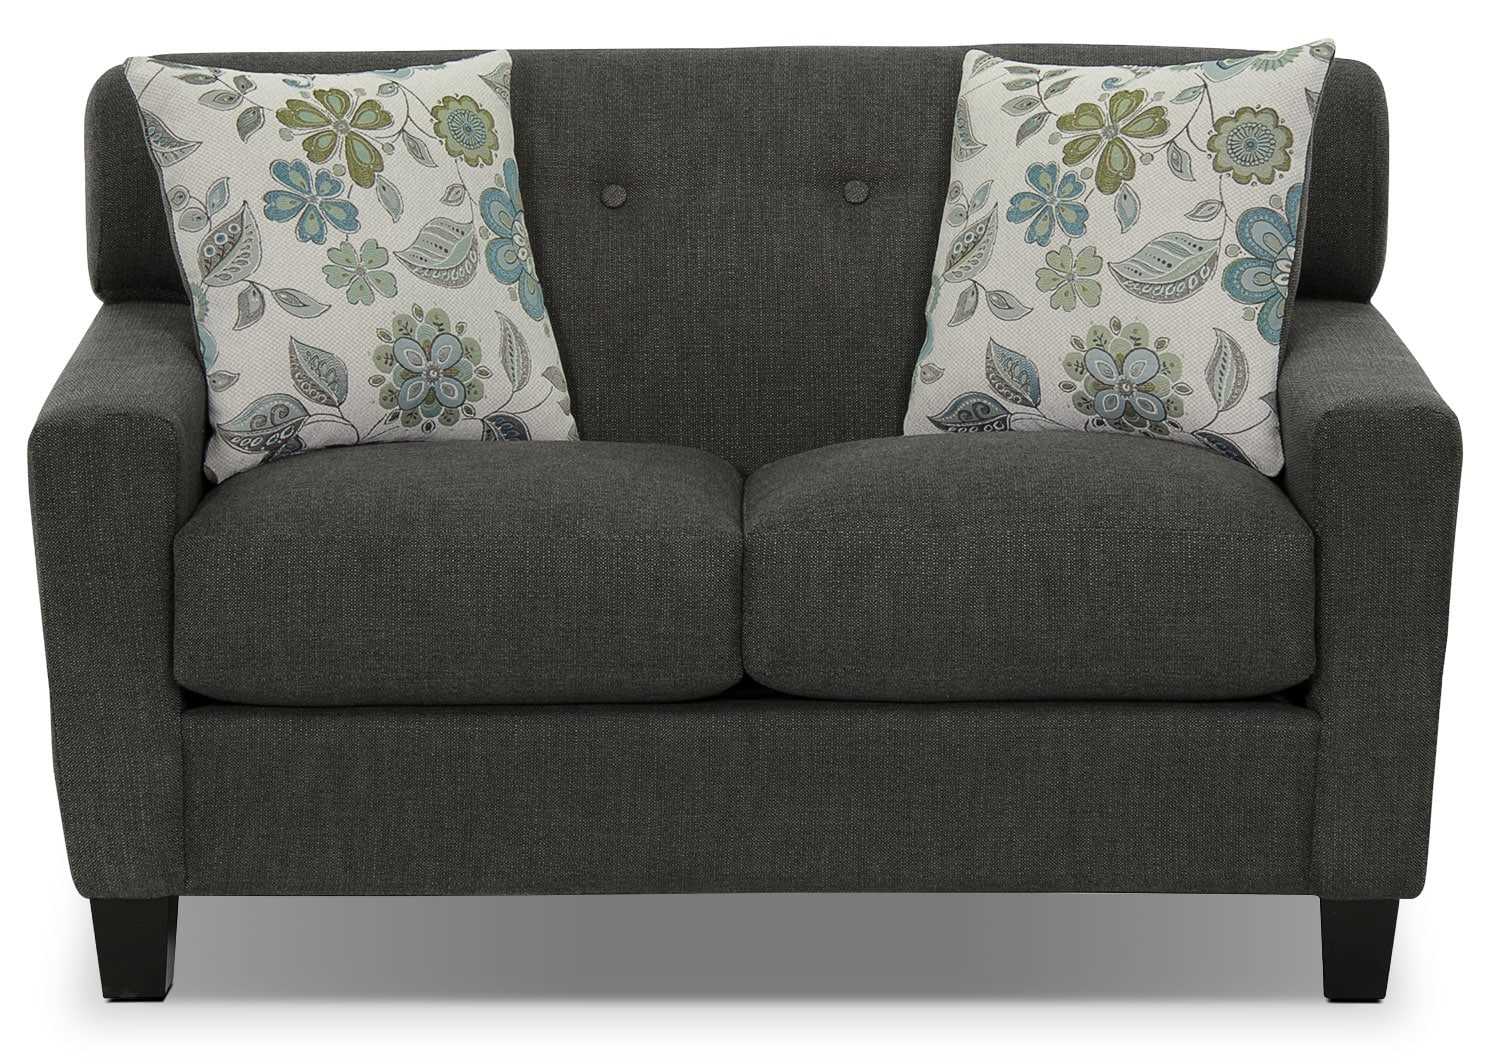 Living Room Furniture - Aubrey Linen-Look Fabric Loveseat - Charcoal